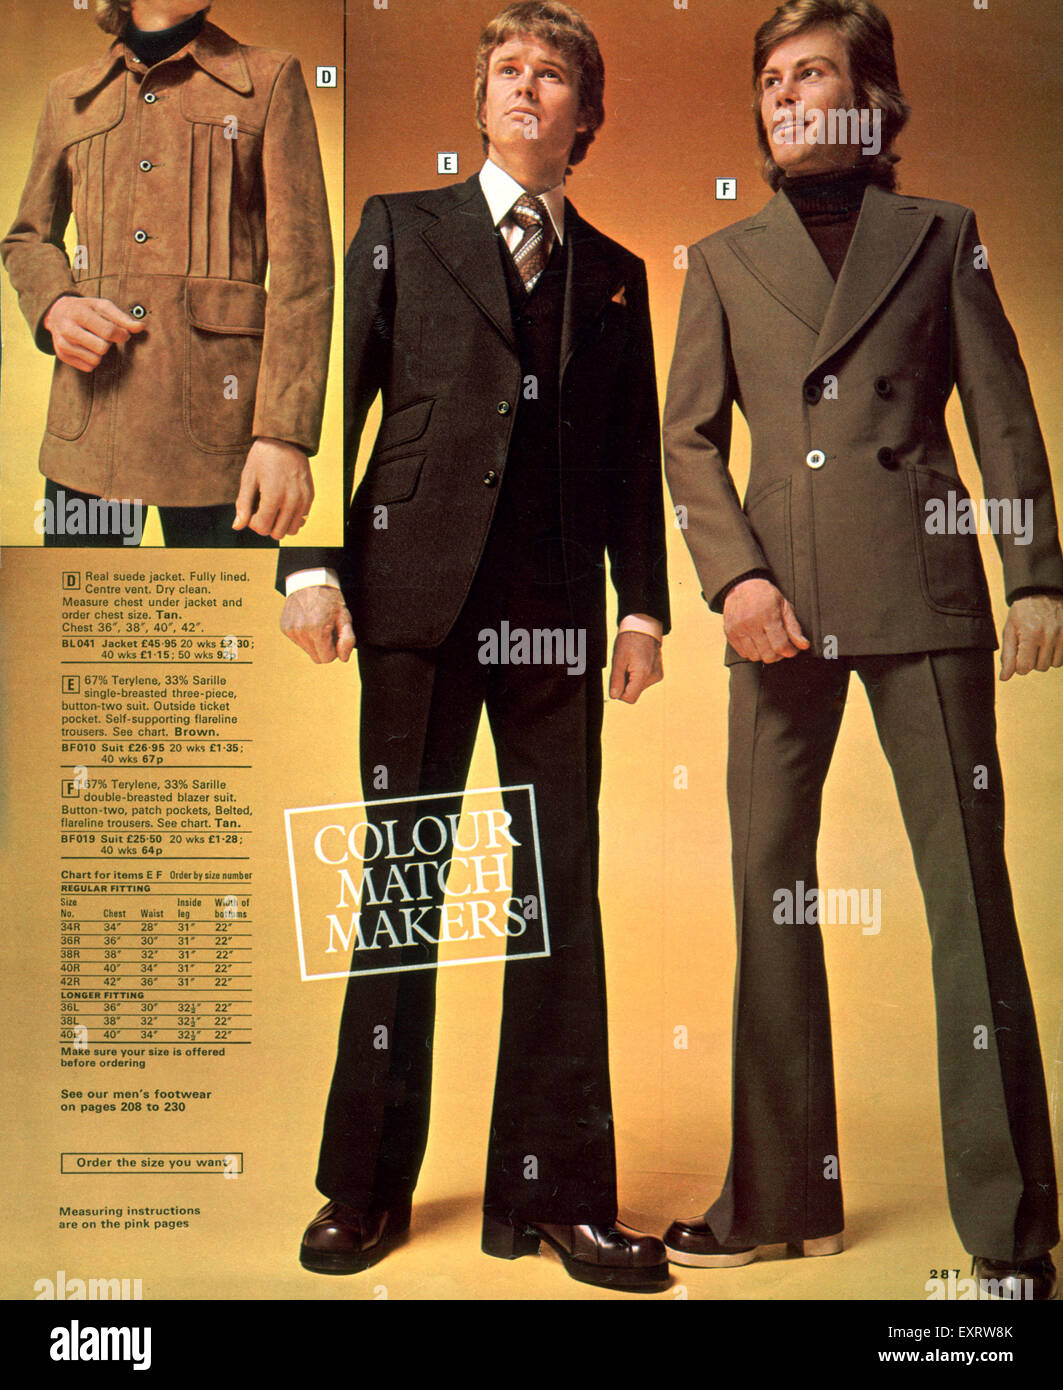 1970s Mens Fashion High Resolution Stock Photography And Images Alamy